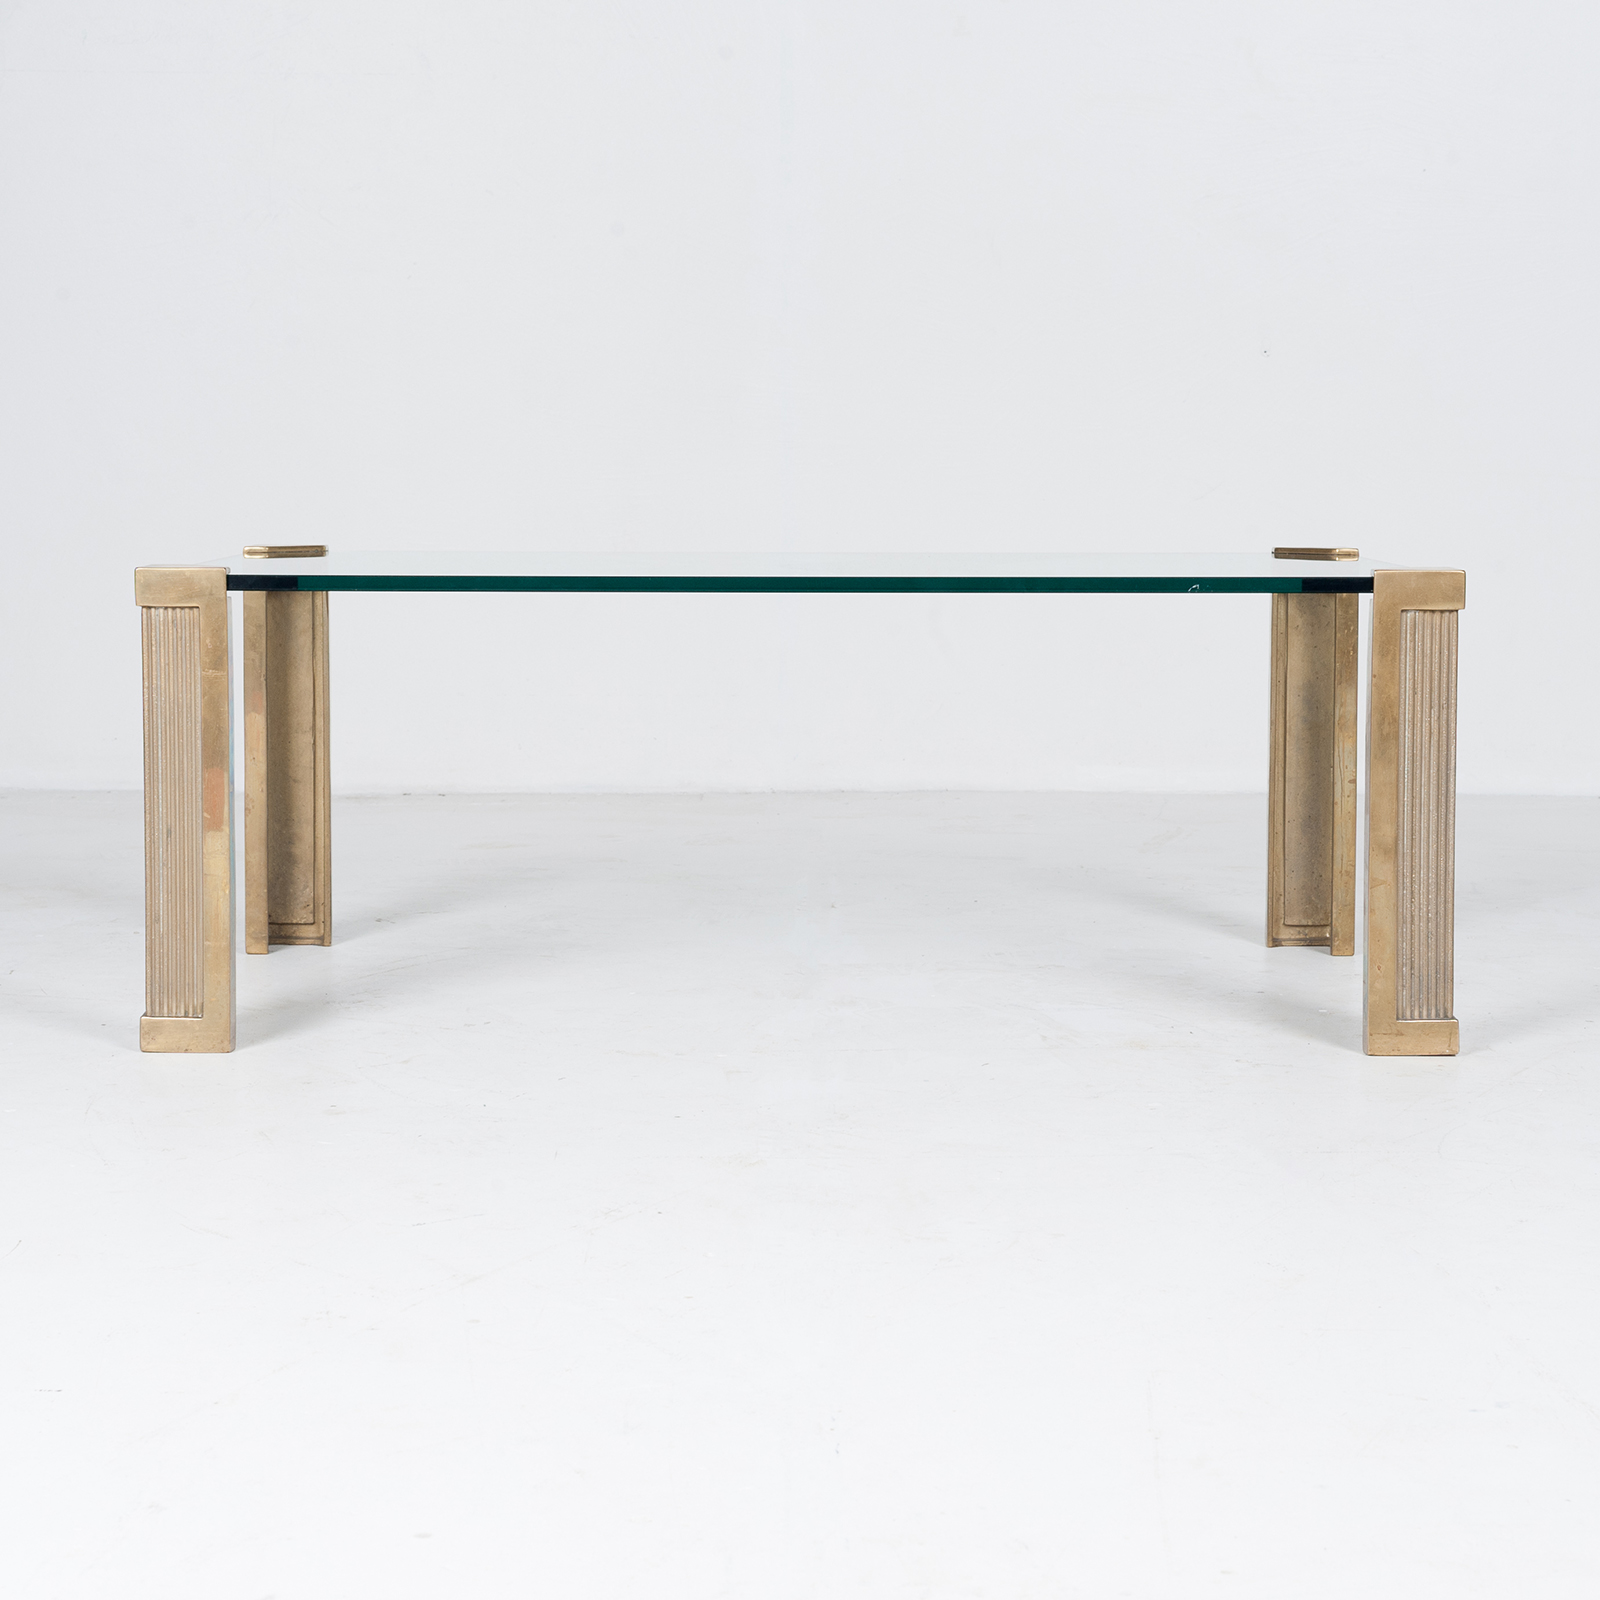 Rectangular Coffee Table In Brass And Glass By Peter Ghyczy, 1970s, The Netherlands 1